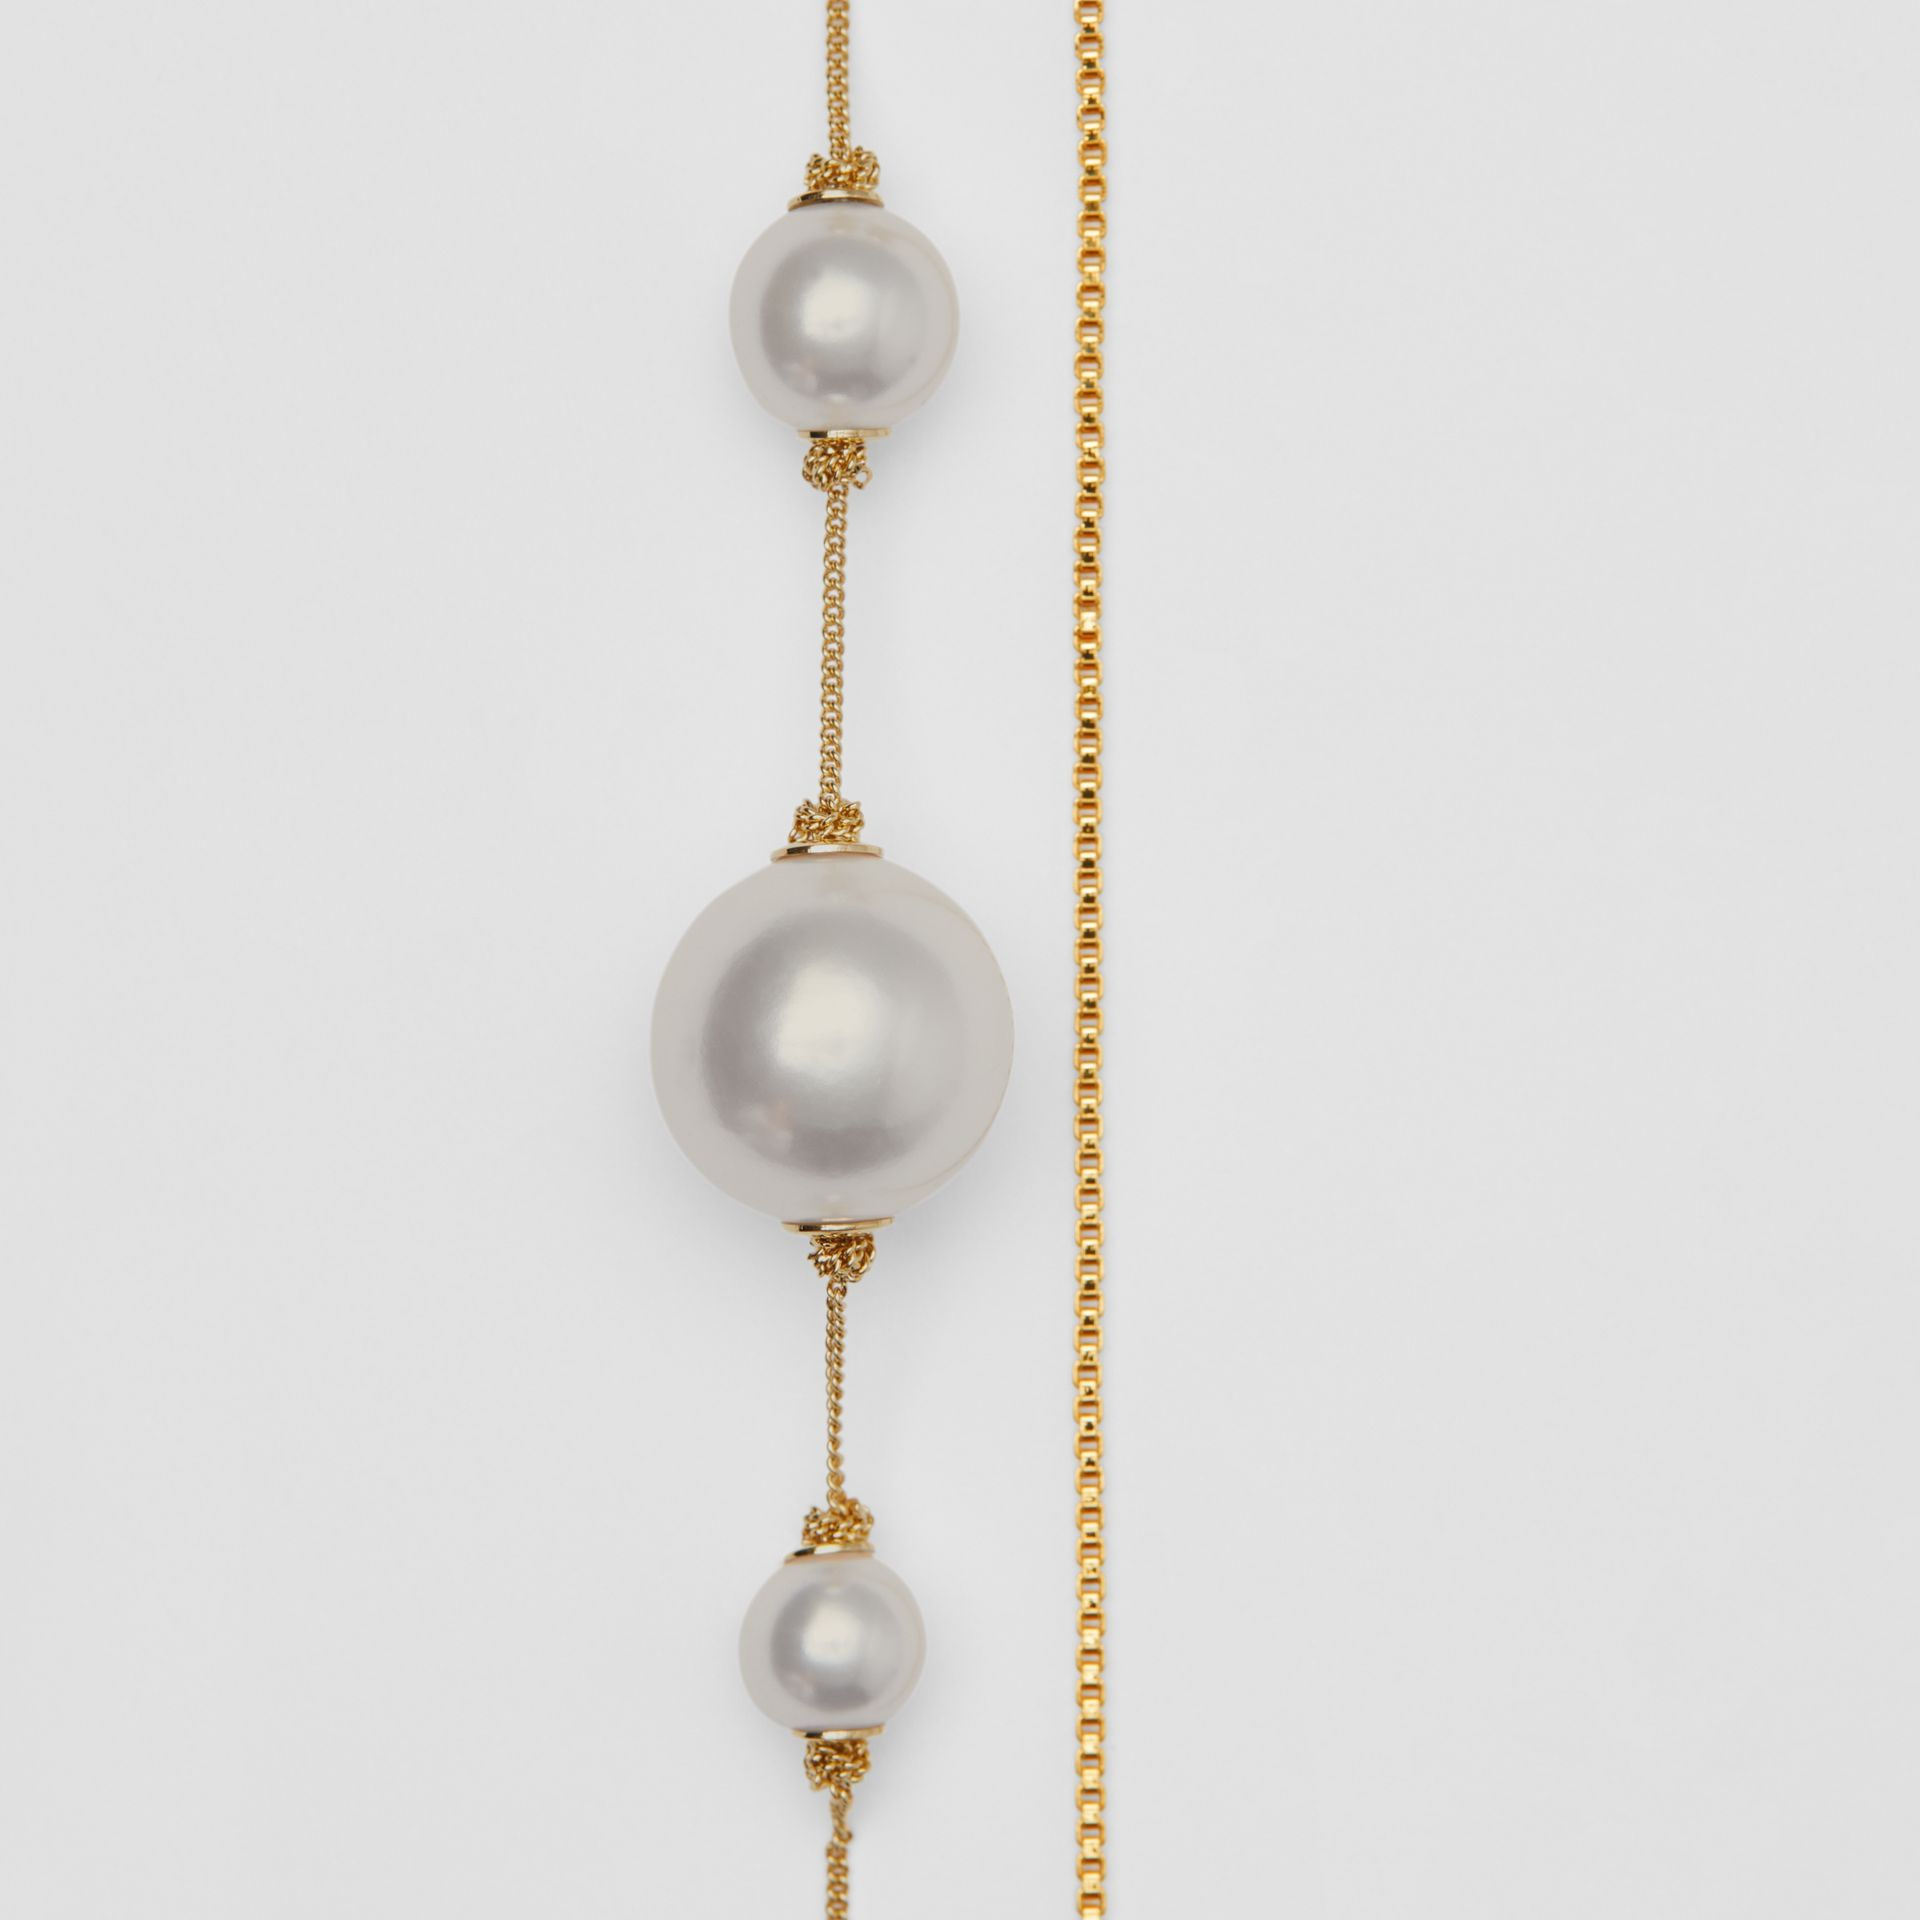 Faux Pearl and Oval Gold-plated Drop Earrings in Light - Women | Burberry Canada - gallery image 3